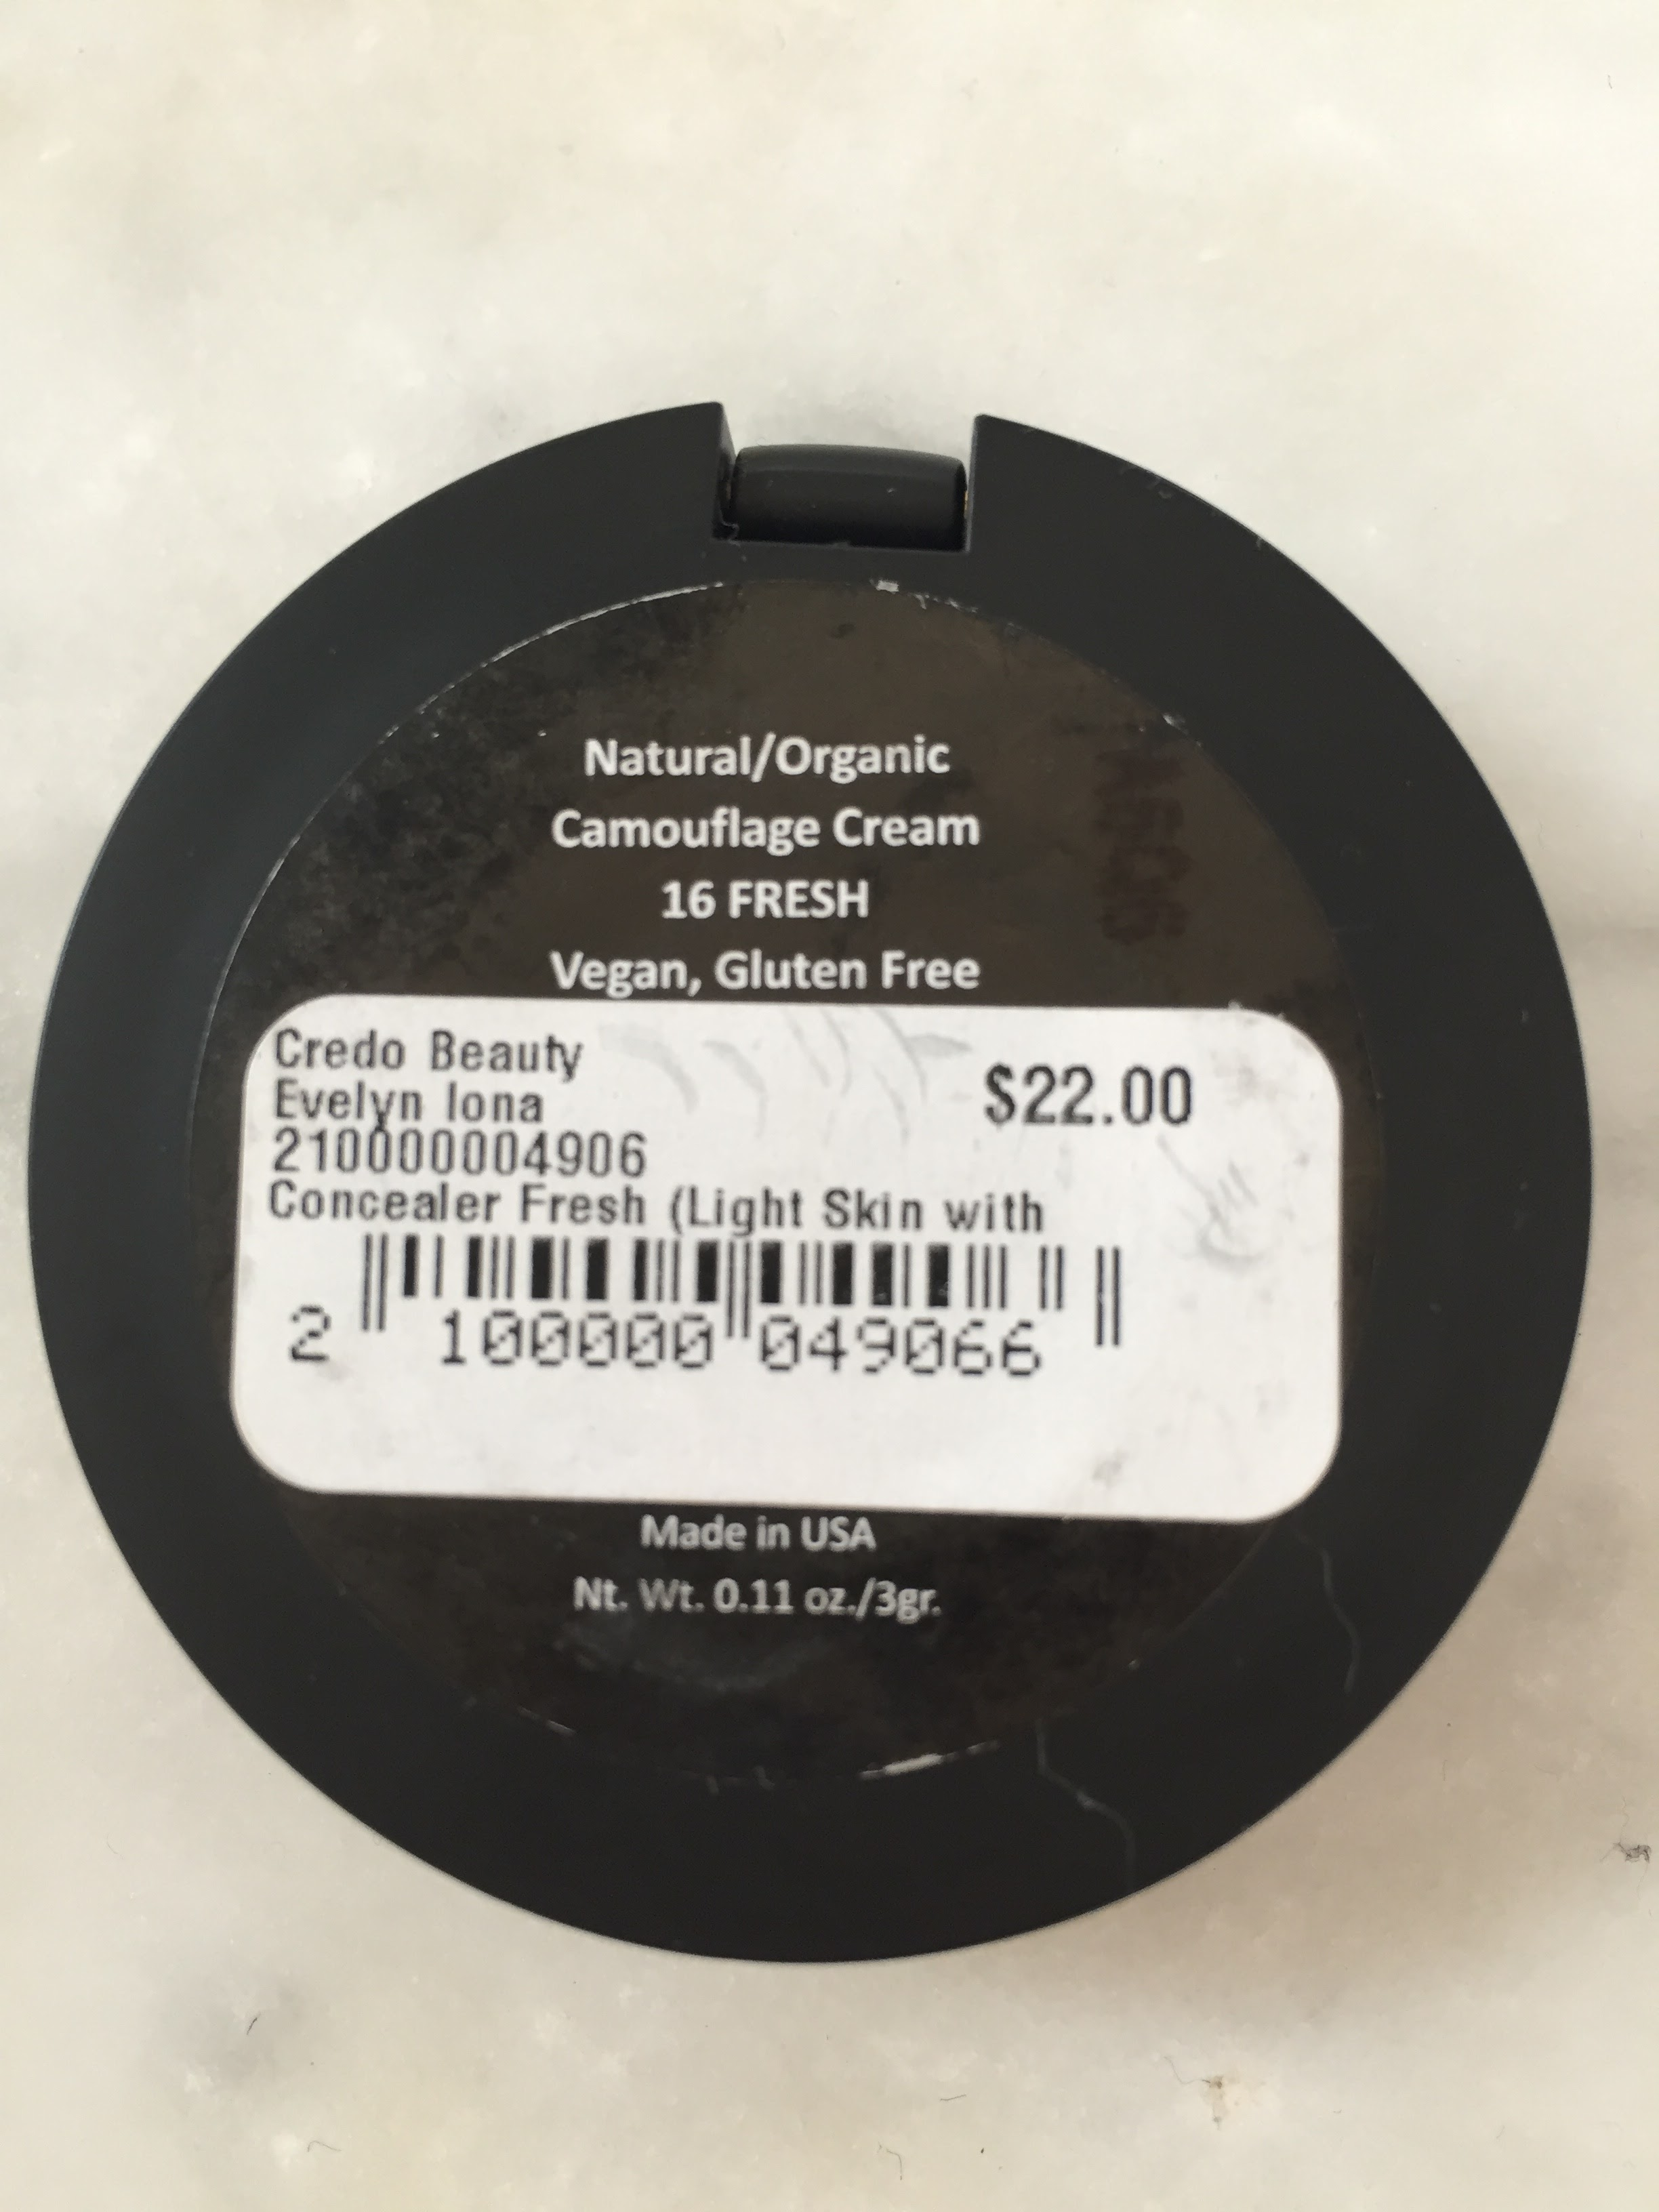 Evenlyn Iona Concealer Label.JPG